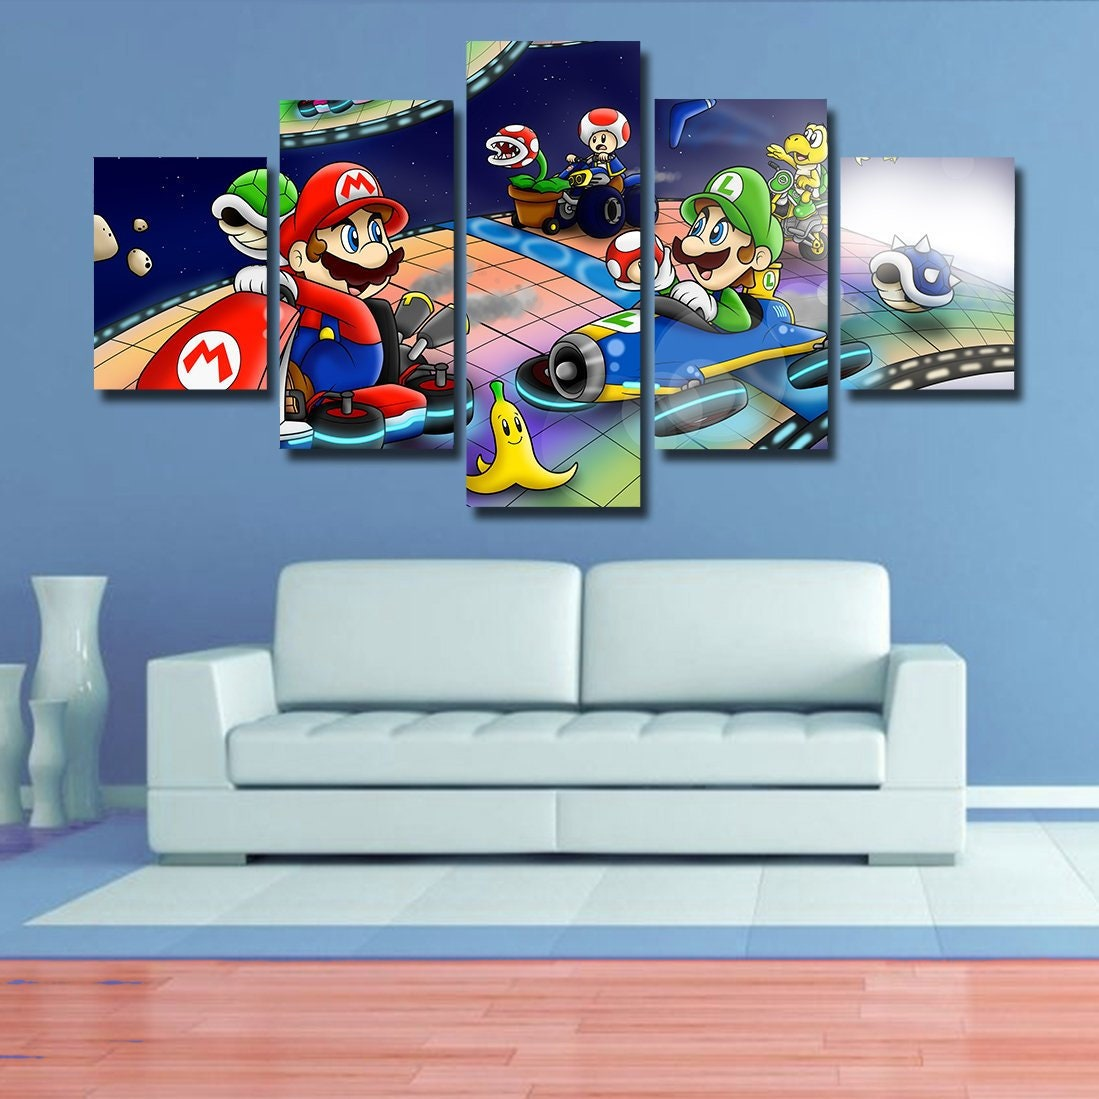 Mario Kart Wall art Super Mario poster canvas, home decor, 5 pieces multi  panel, kids room, bedroom, giclee, framed